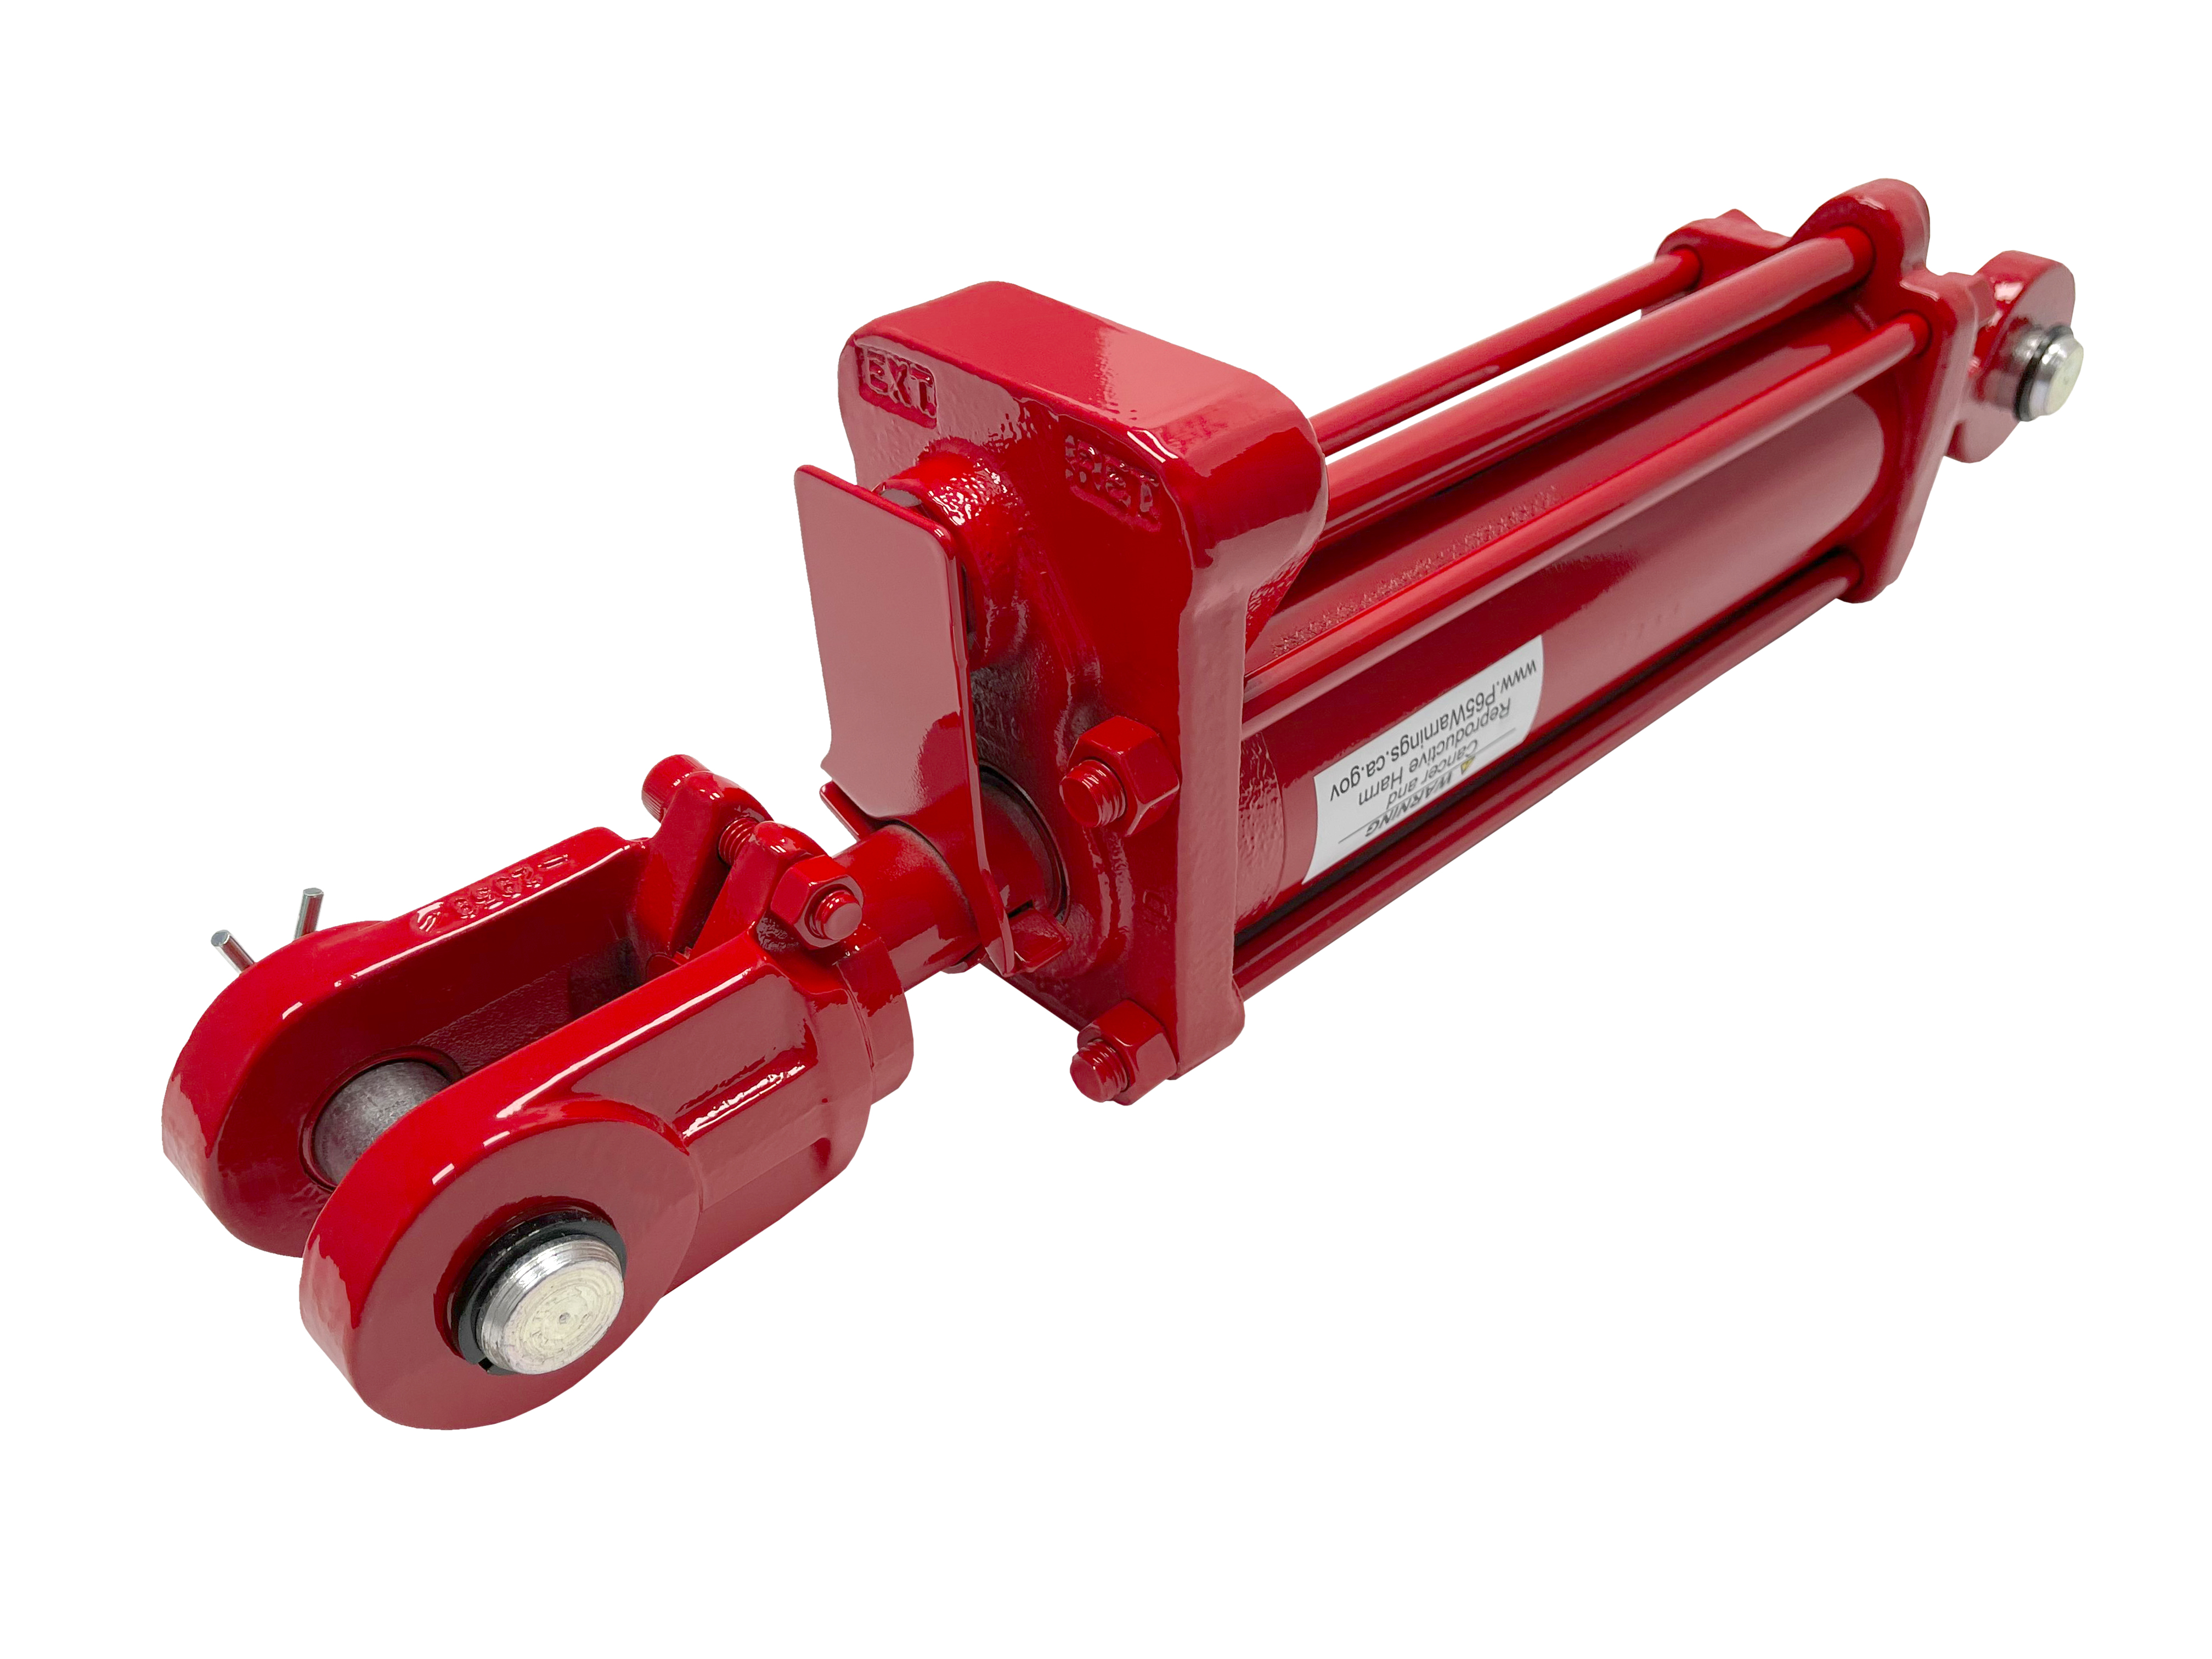 3 bore x 16 stroke CROSS hydraulic cylinder with depth control, tie rod double acting cylinder DC series | CROSS MANUFACTURING